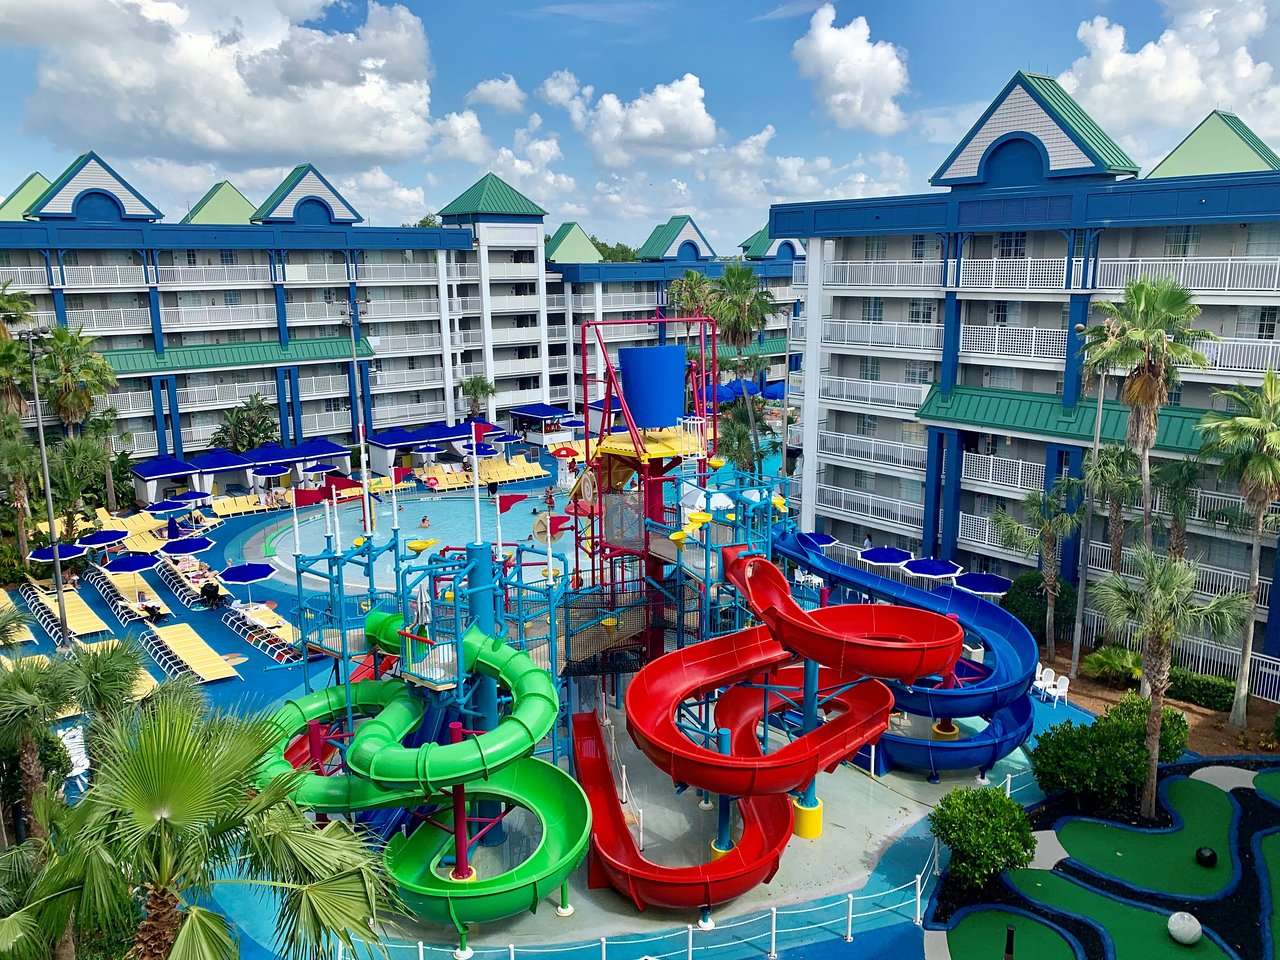 The 10 Best Orlando Hotels With Shuttle Jul 2019 With Prices